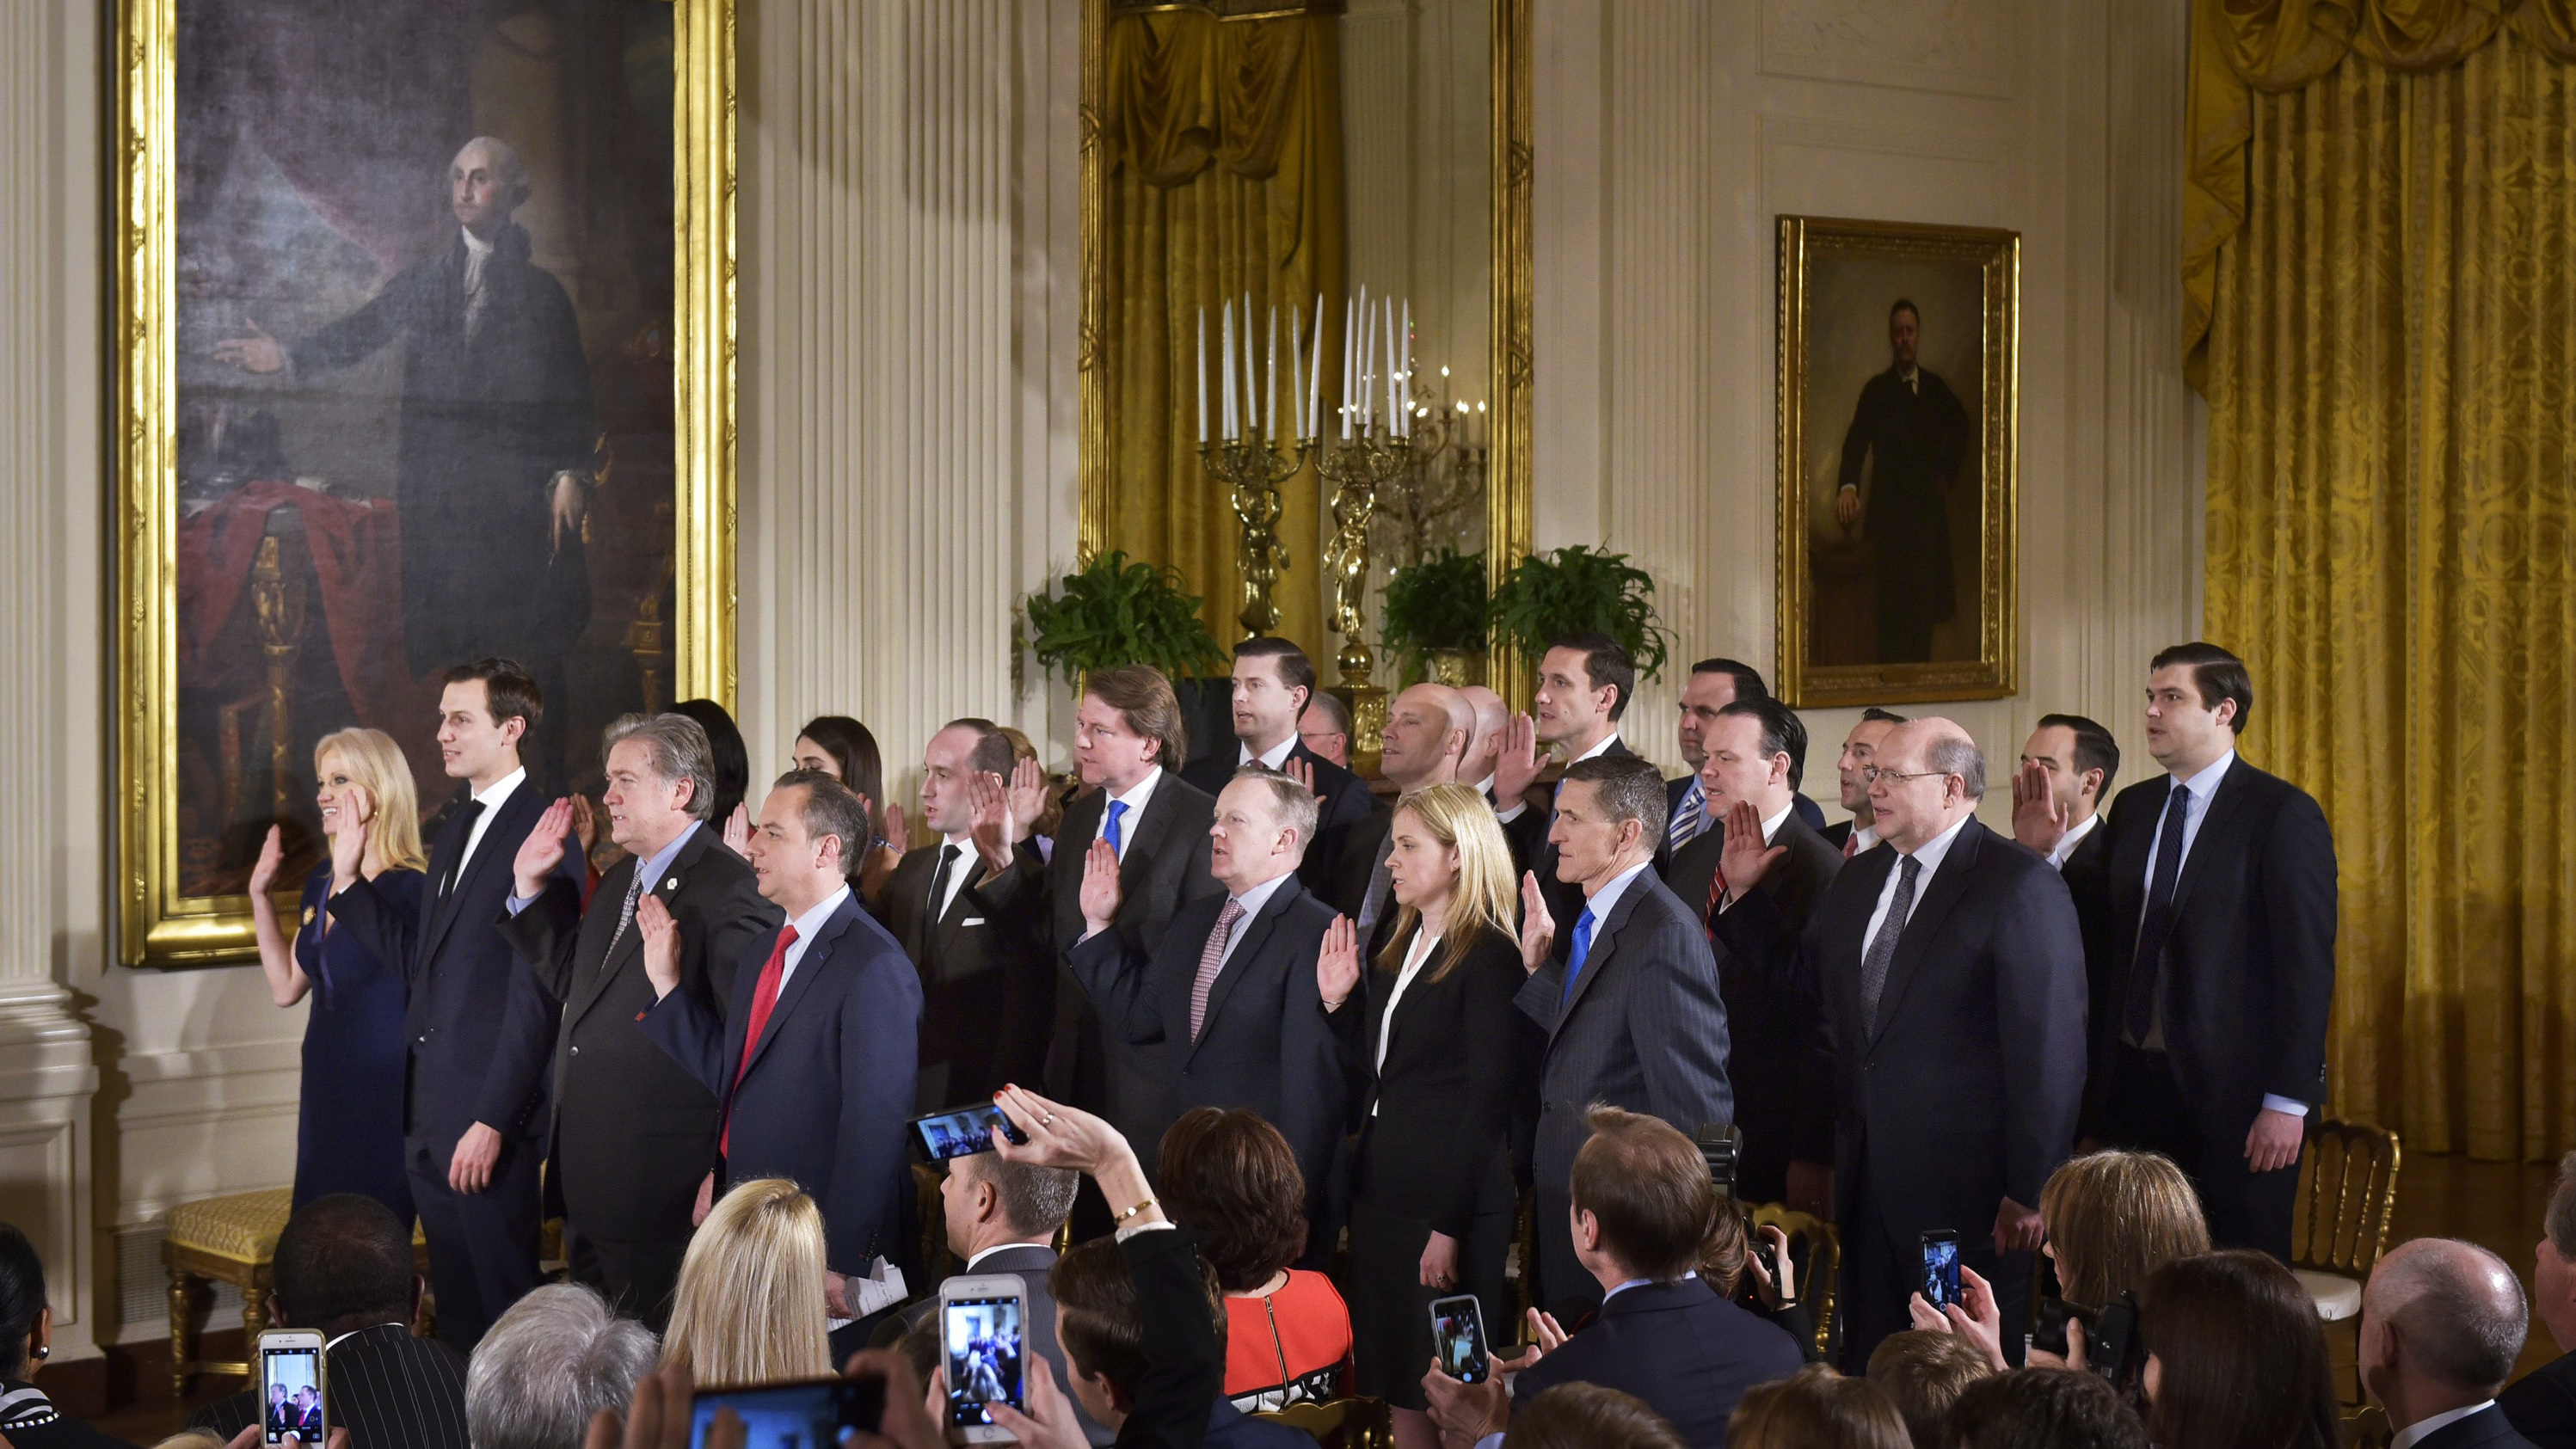 The White House senior staff is sworn in at the White House in January. Twenty-two members of the staff will make $179,700 this year and 18 more earn $165,000 a year, making the Trump administration